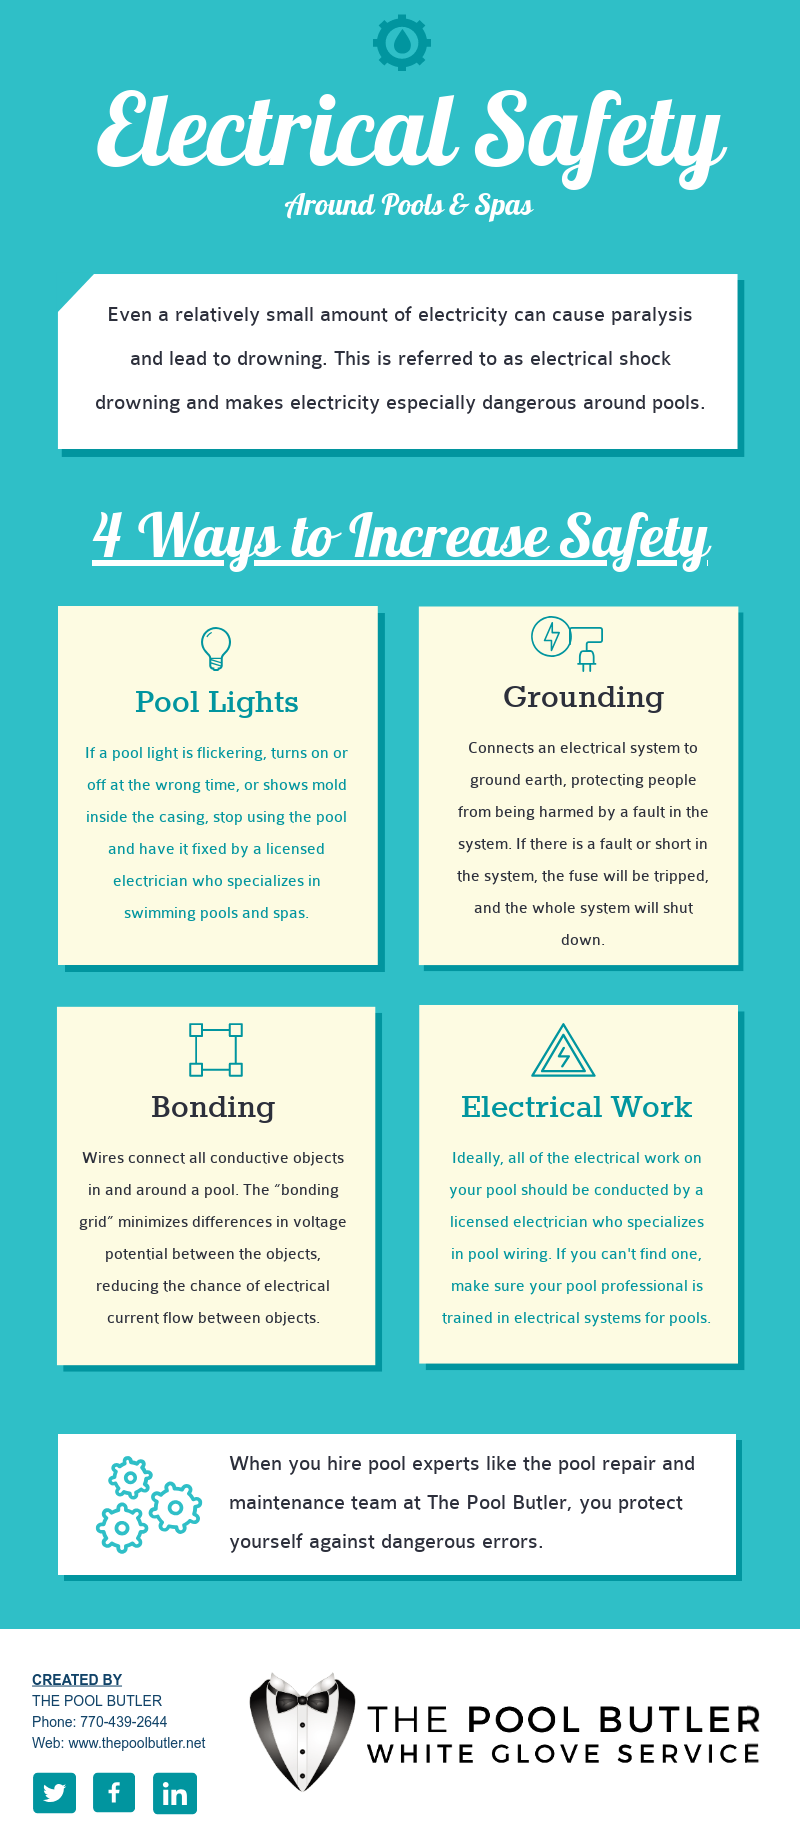 Electrical Safety Around Pools and Spas [infographic]